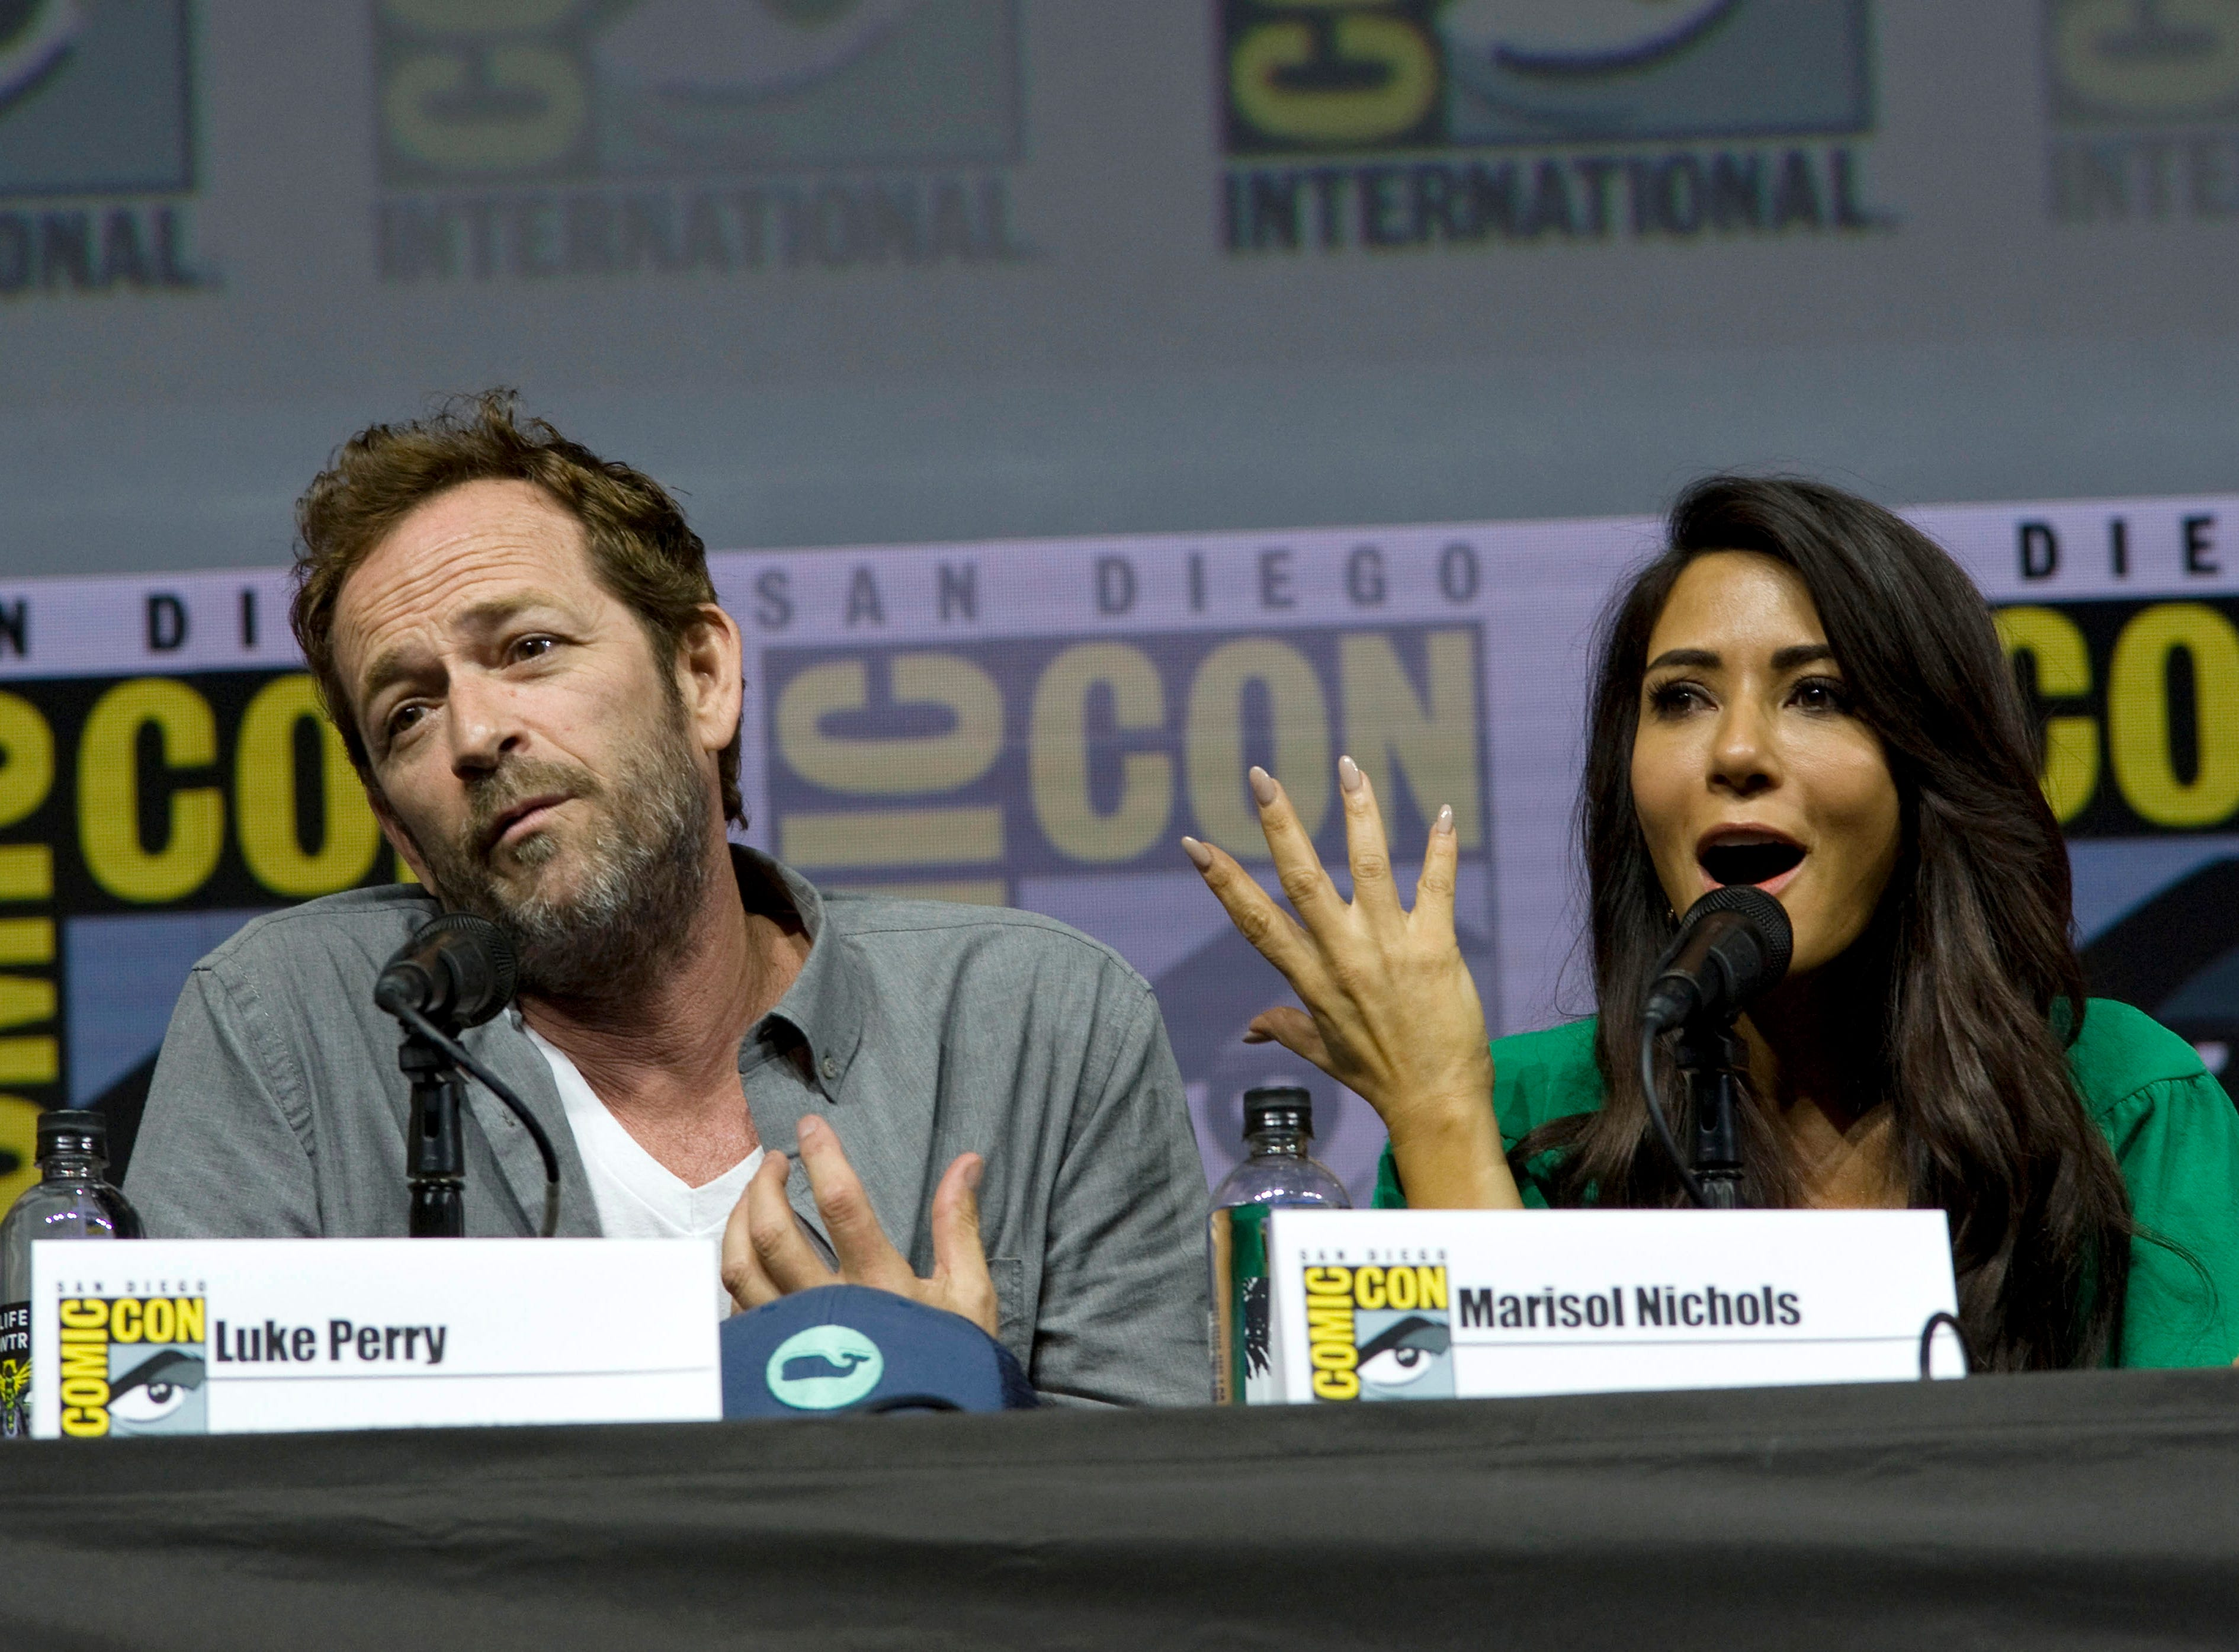 Cast from the television series, Riverdale, Luke Perry and Marisol Nichols, speak during a panel presentation at Comic Con International in San Diego, Calif. on July 22, 2018.